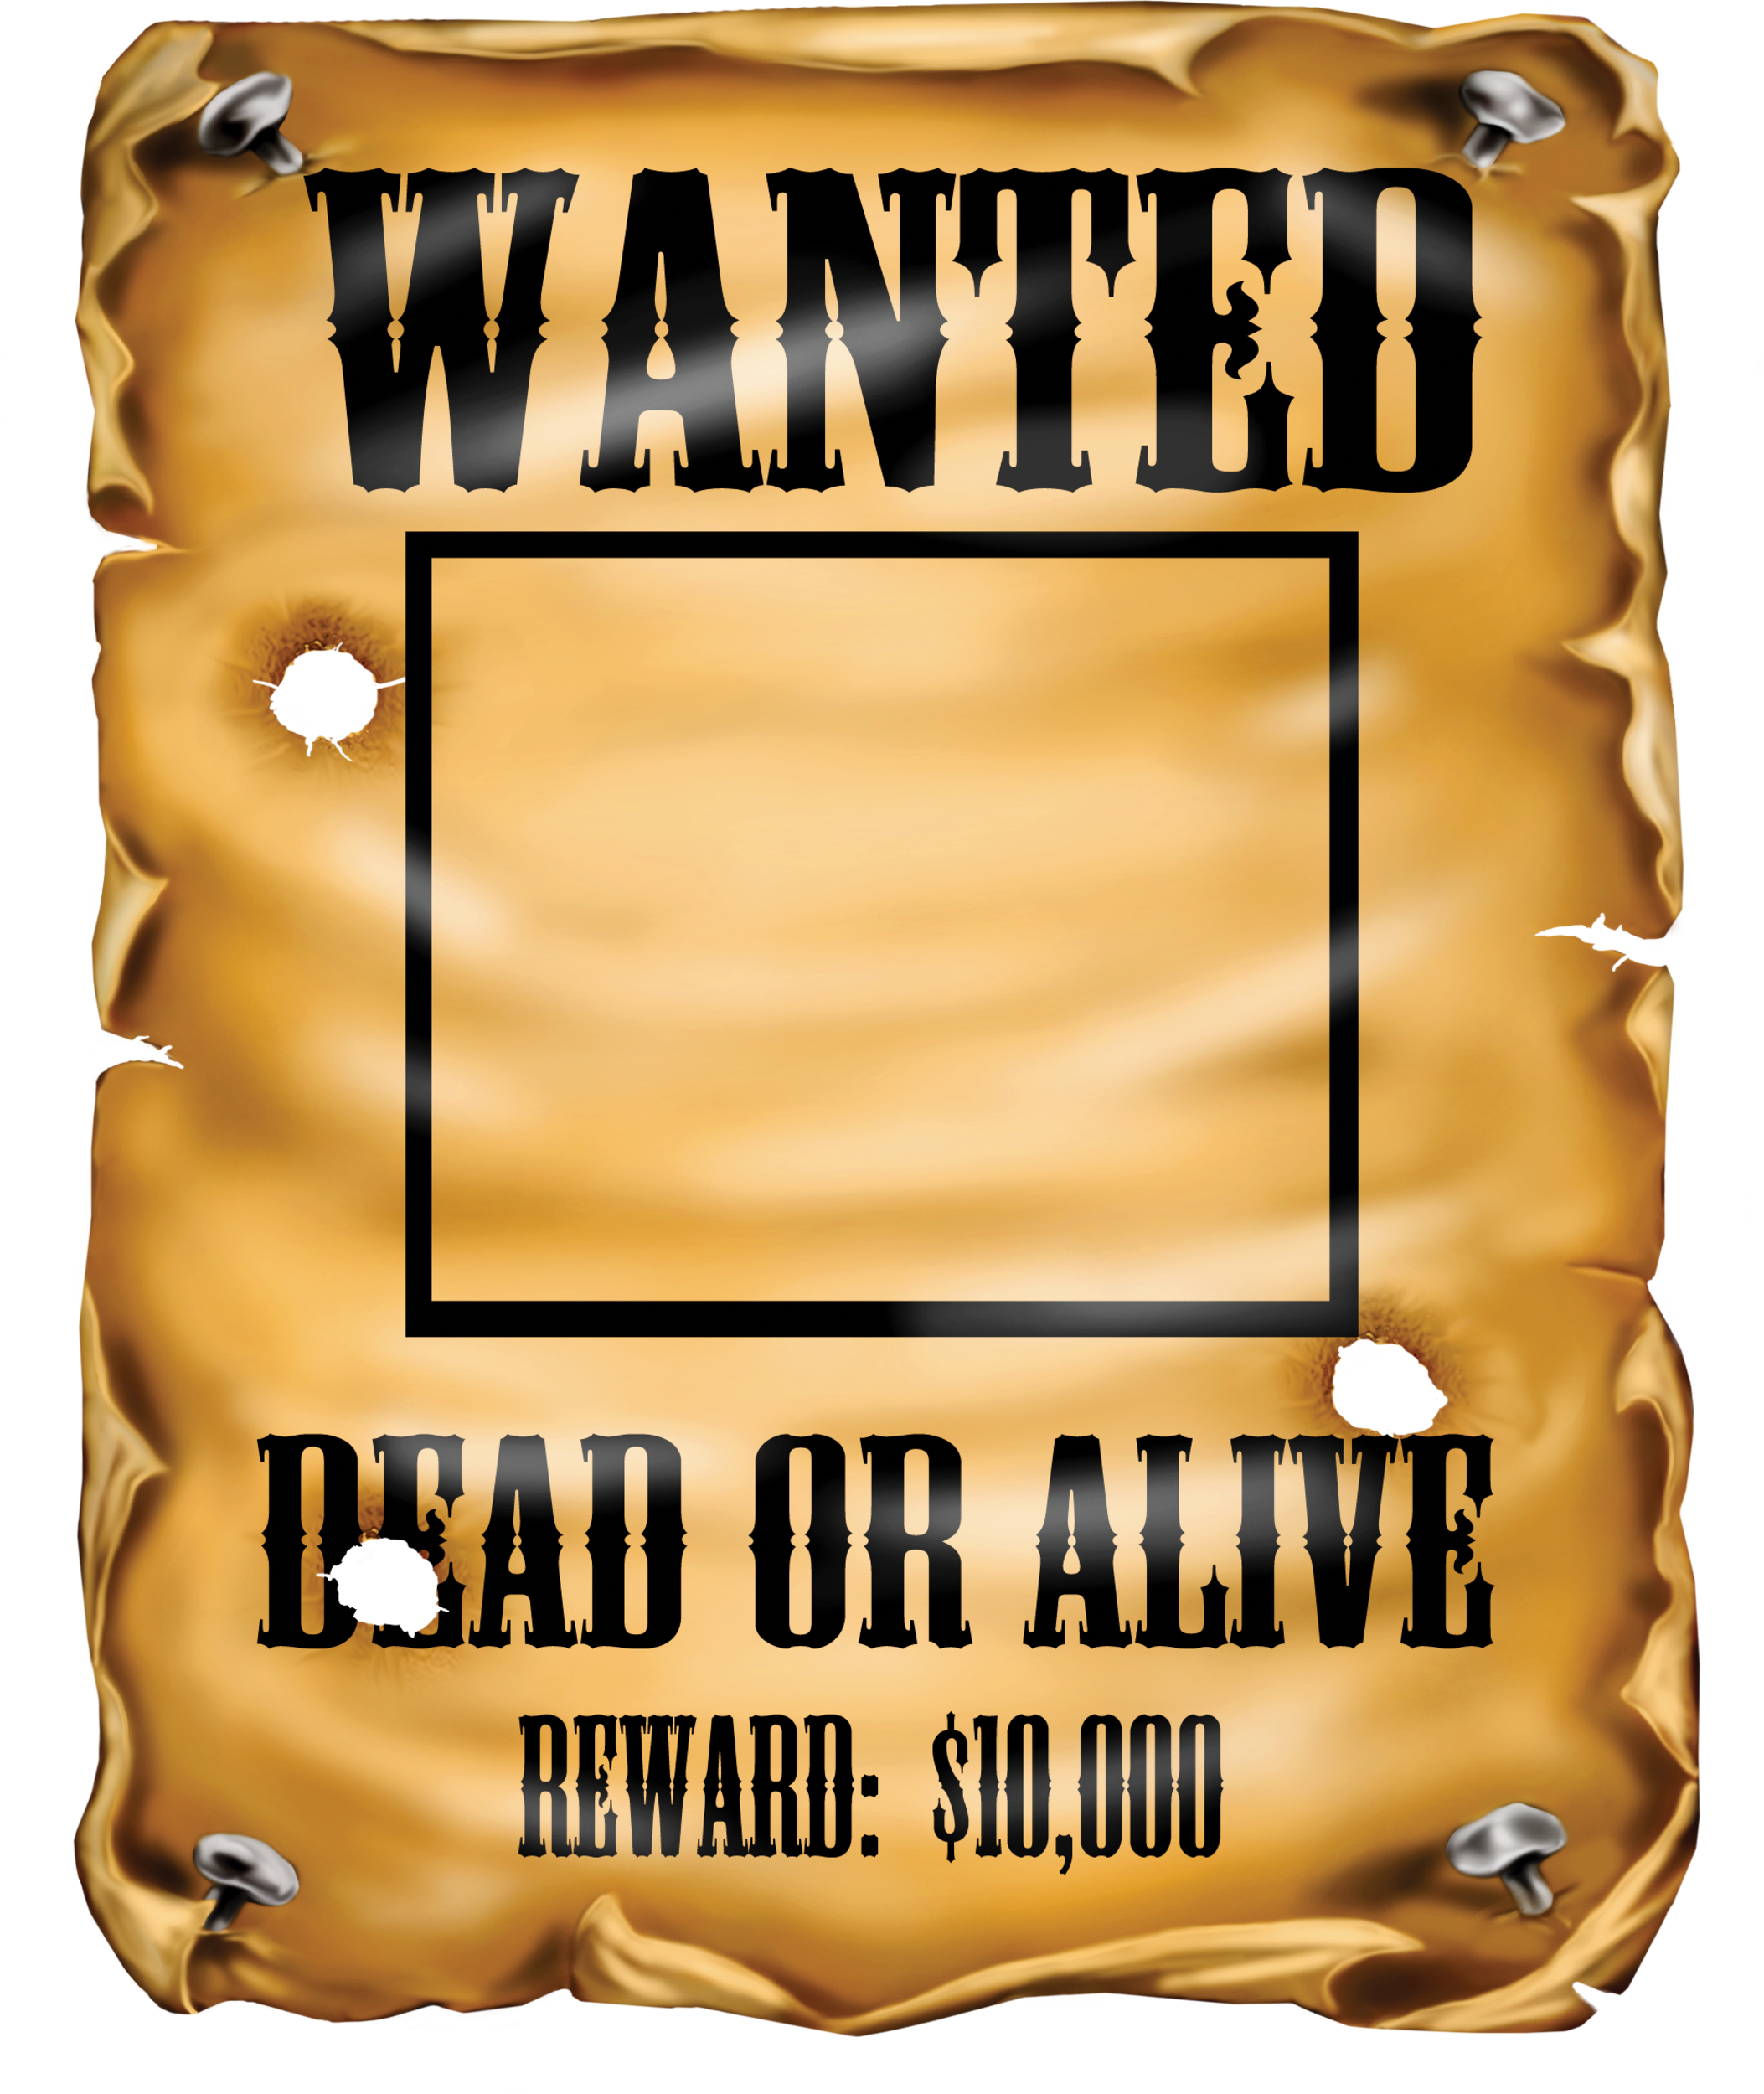 Poster of a sun clipart graphic download Wanted poster clipart tumundografico 2 | Pics/Words/PNG | Pinterest ... graphic download